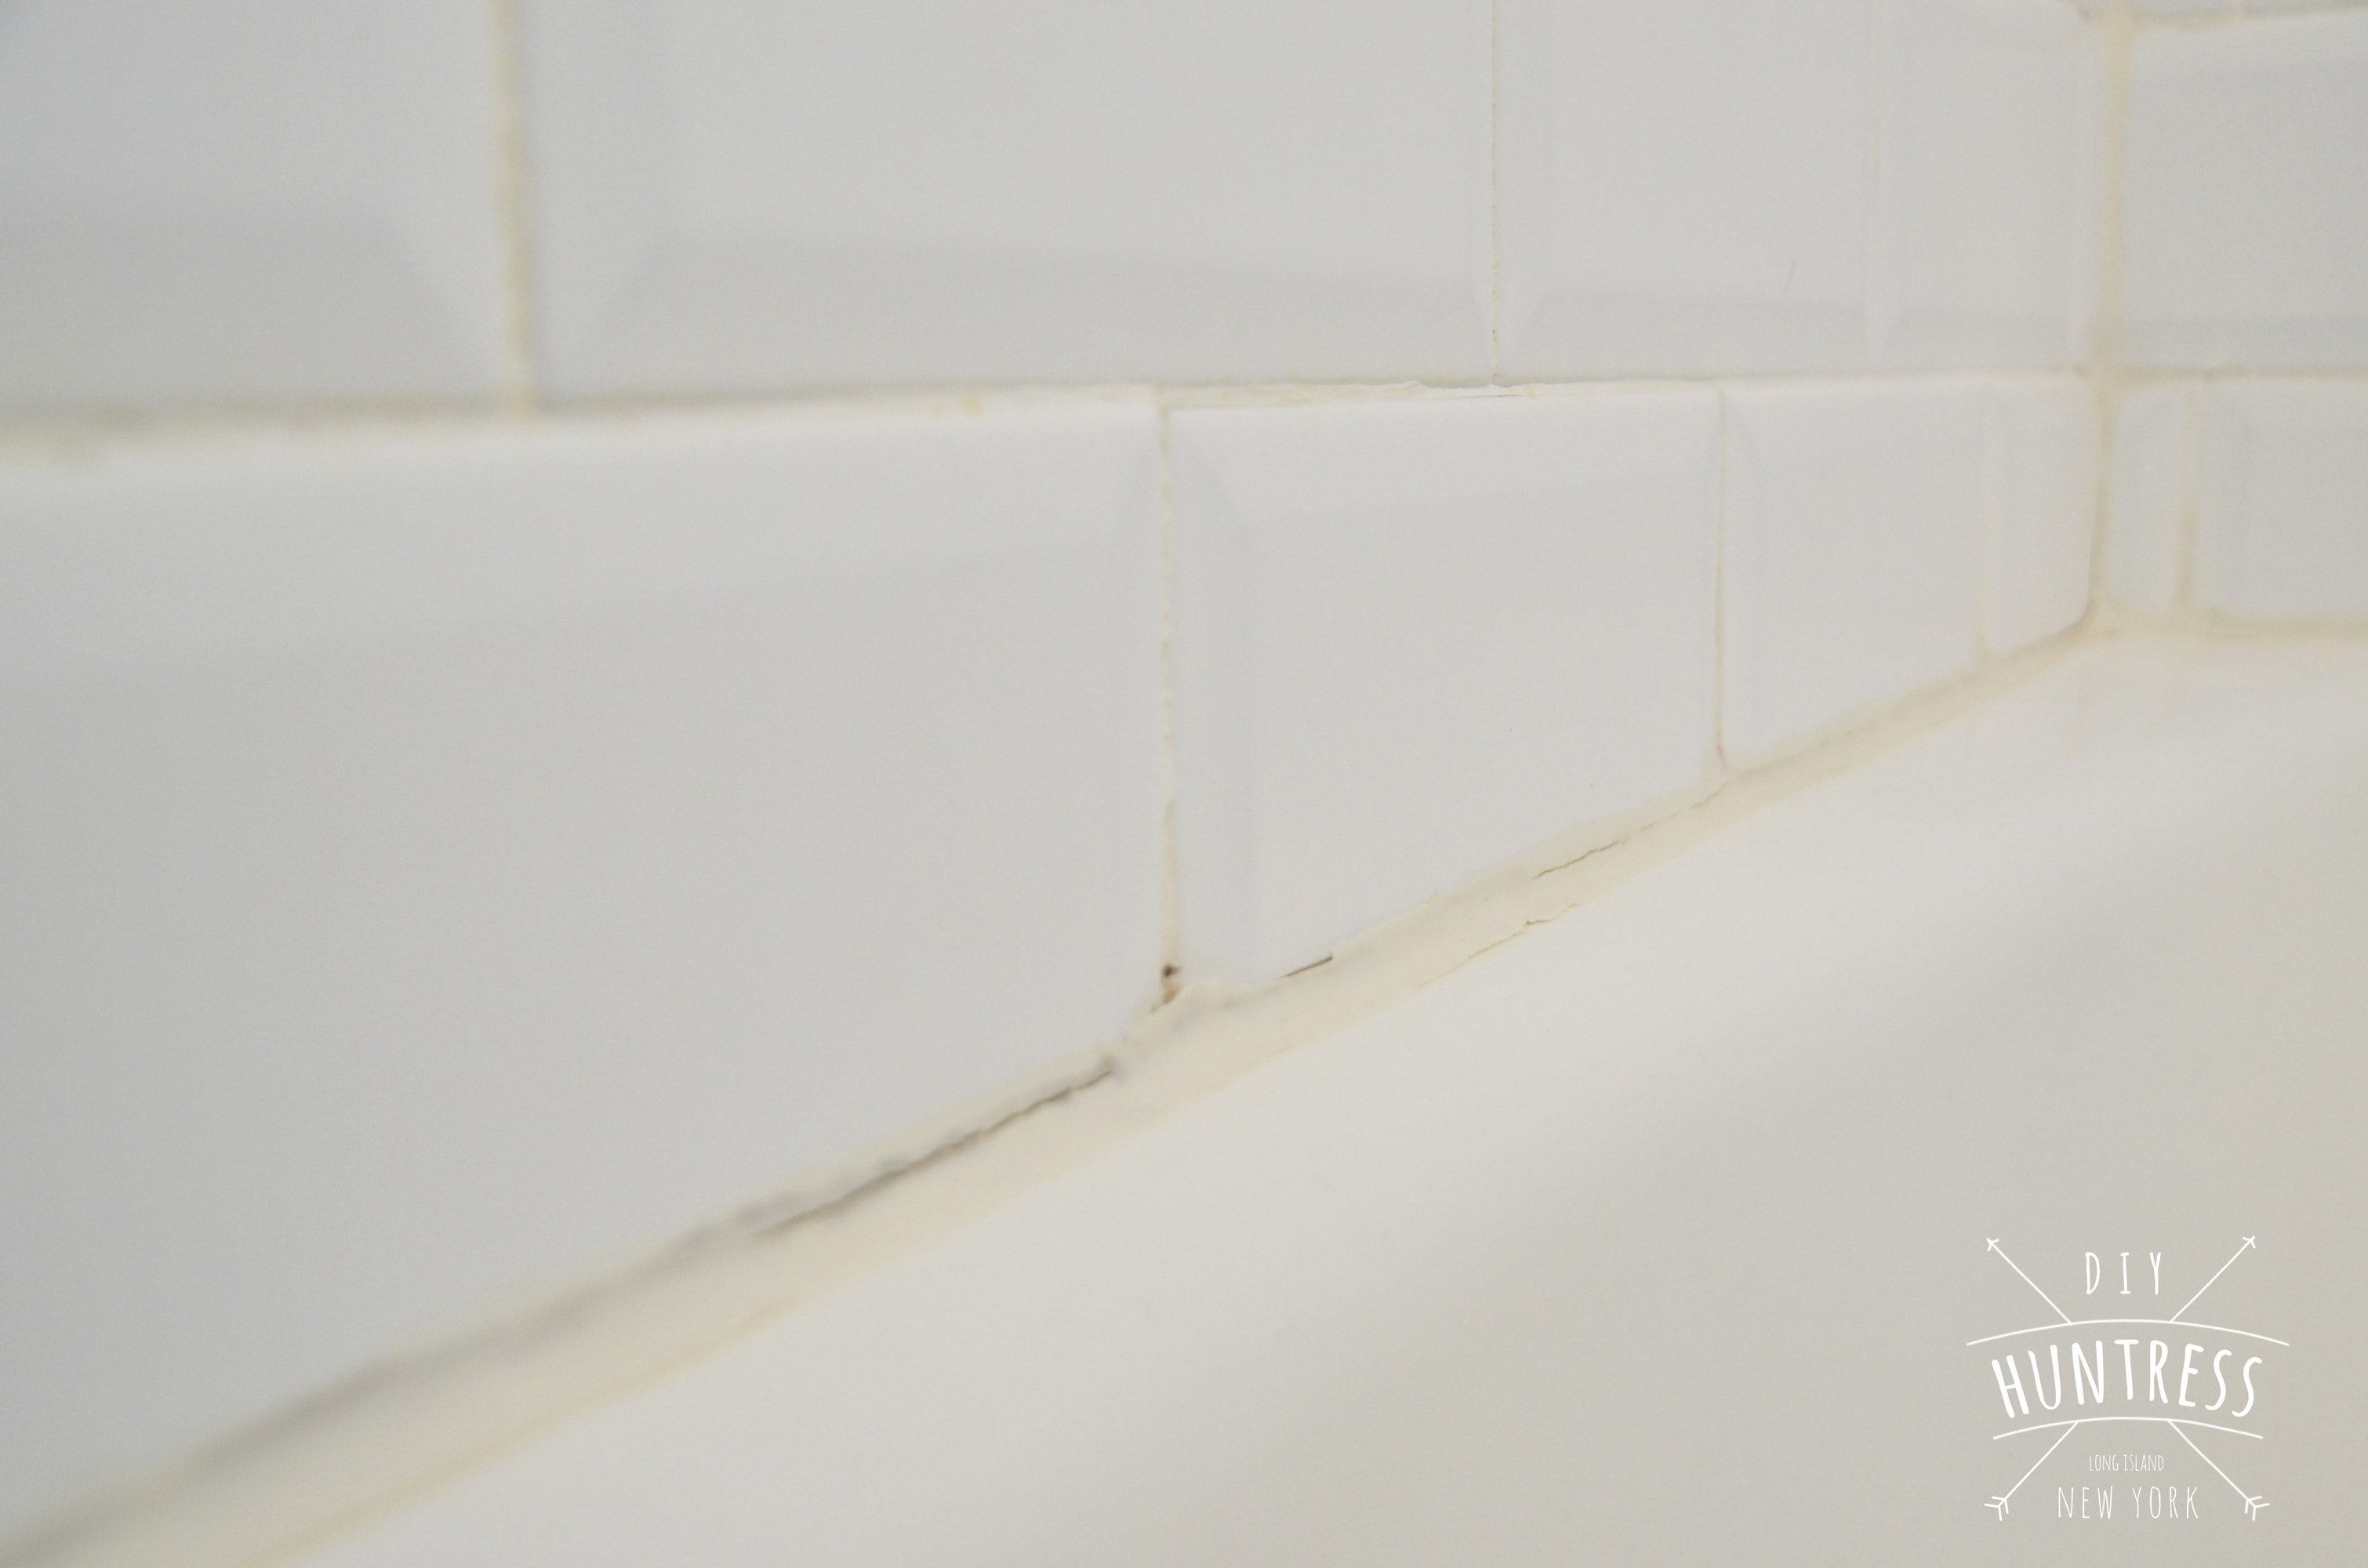 How To Re-Caulk Your Bathtub (The Right Way) - DIY Huntress